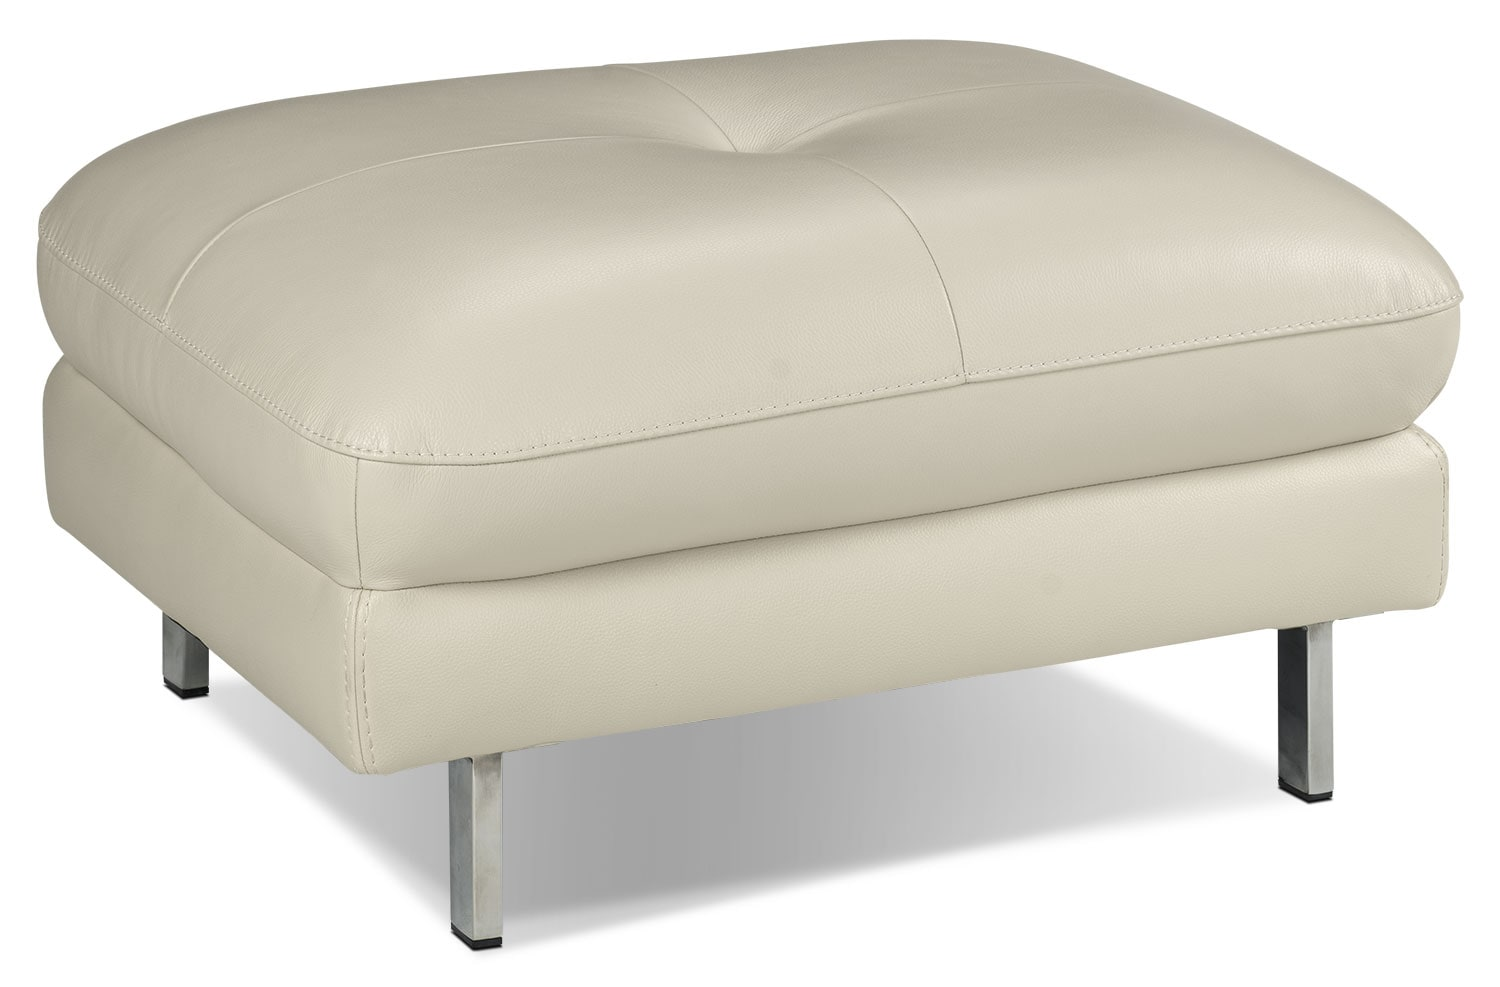 Living Room Furniture - Anika Ottoman - Bisque